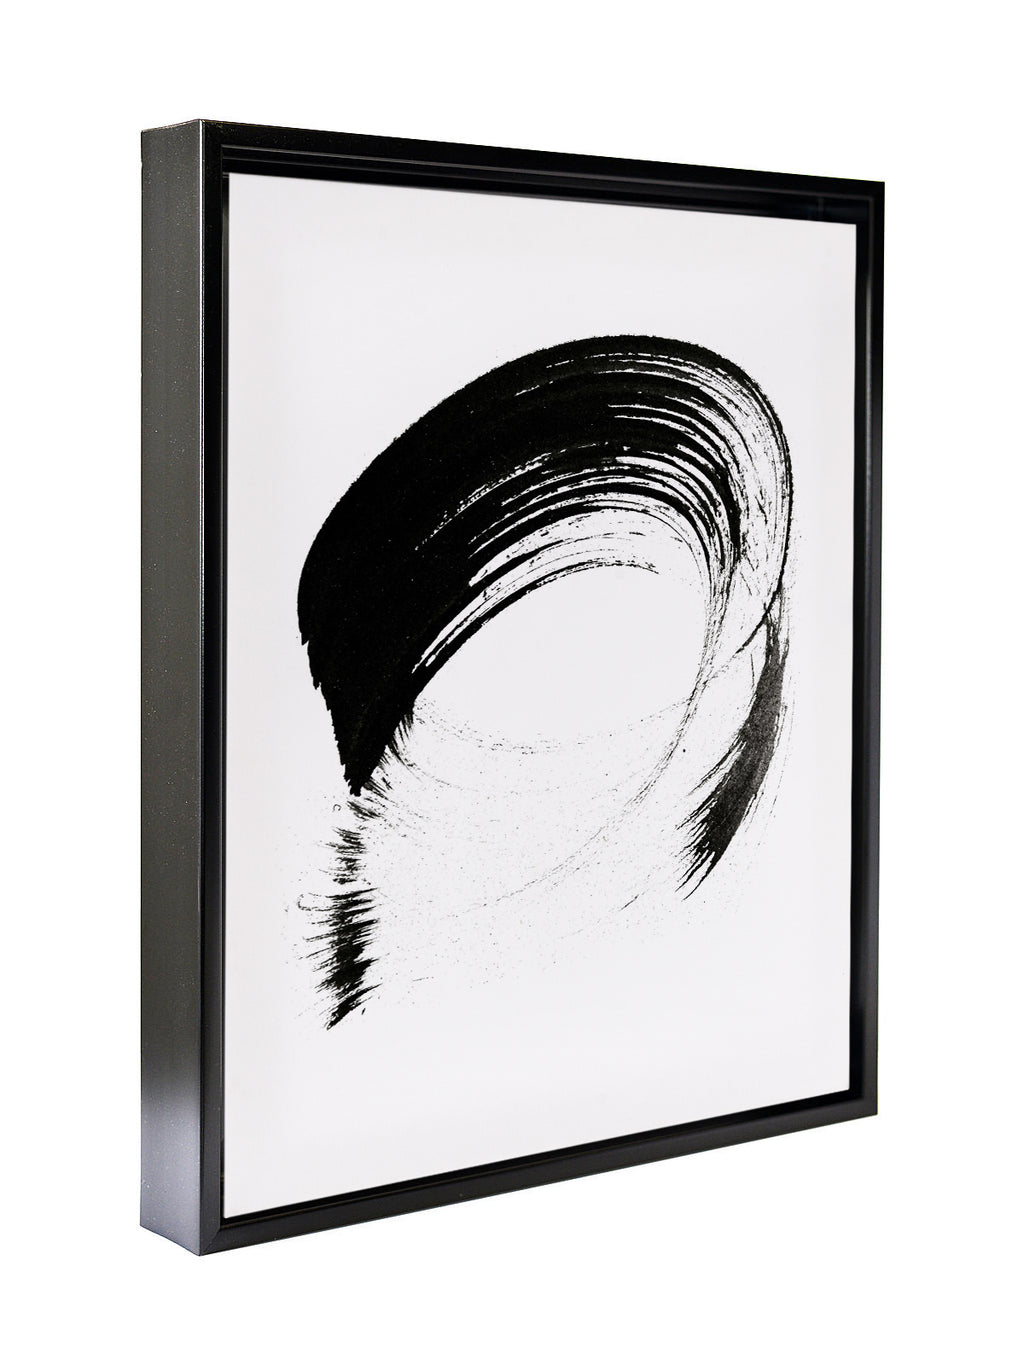 SCRIBBLE Premium Framed Gallery Wrap By Honeytree Prints